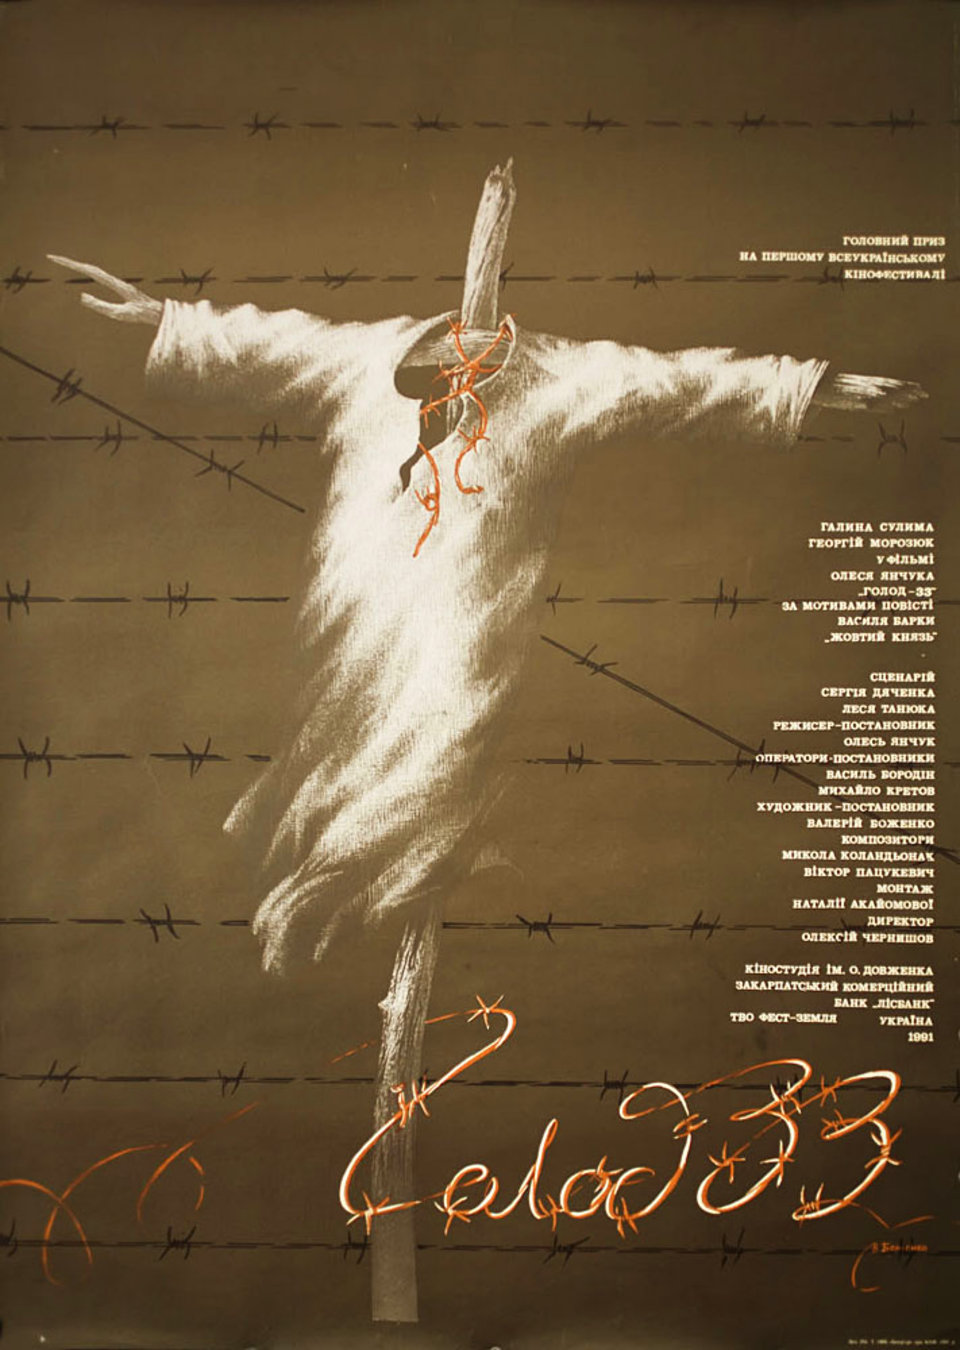 Famine-33 1991 Russian A1 Poster